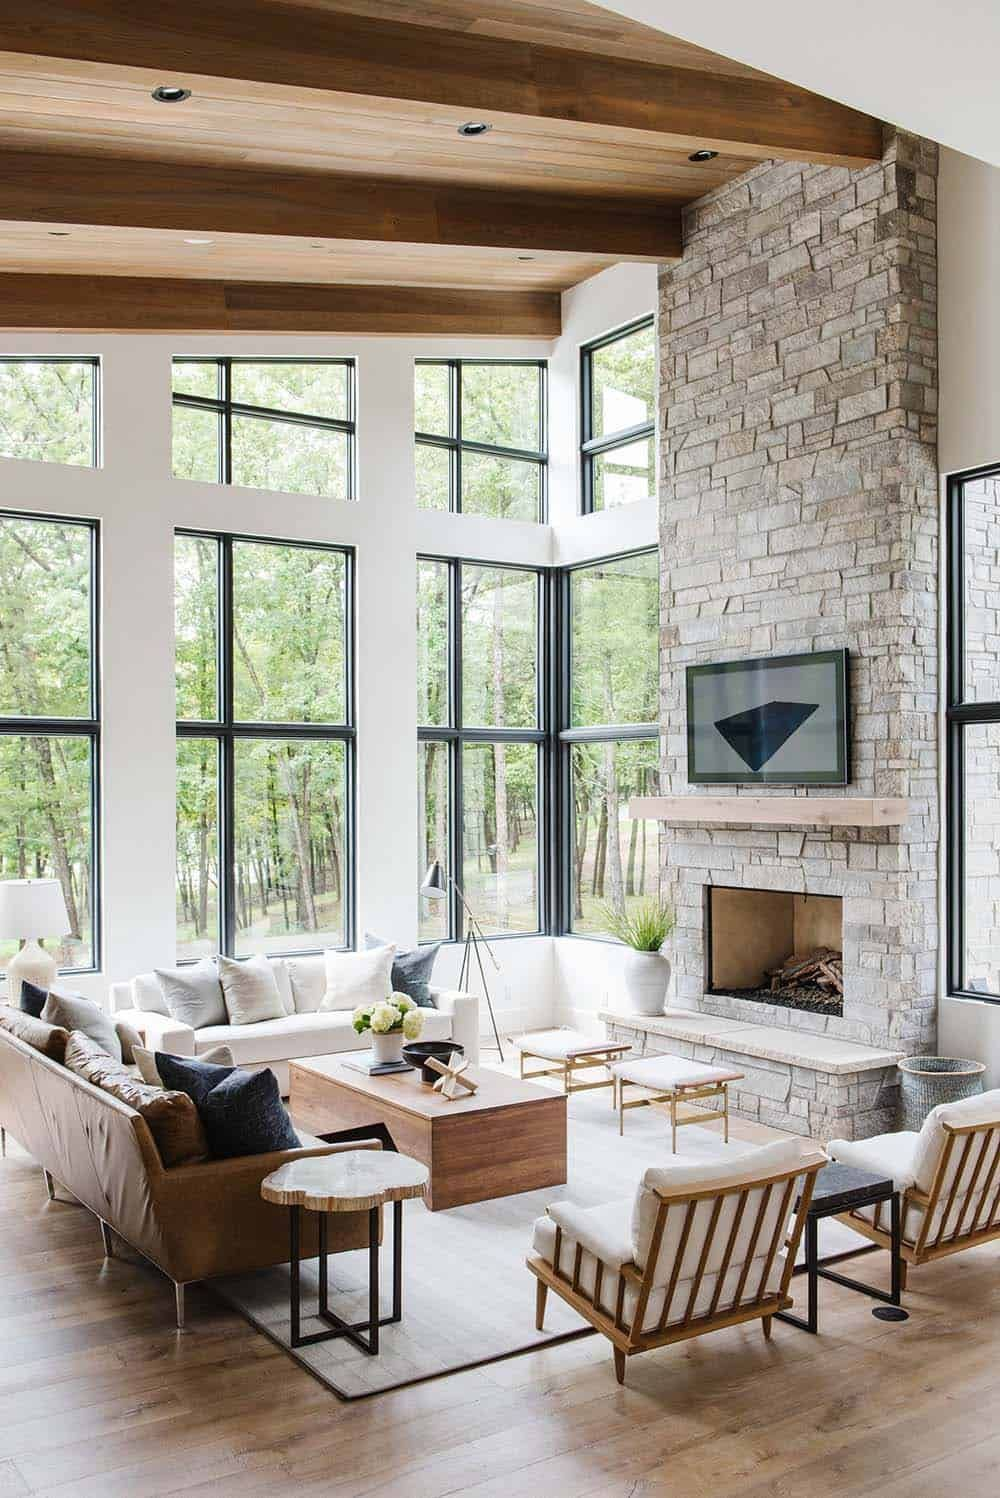 Pictures Of Interior Design Living Rooms: House Envy: Modern Lake House In The Midwest With Stunning